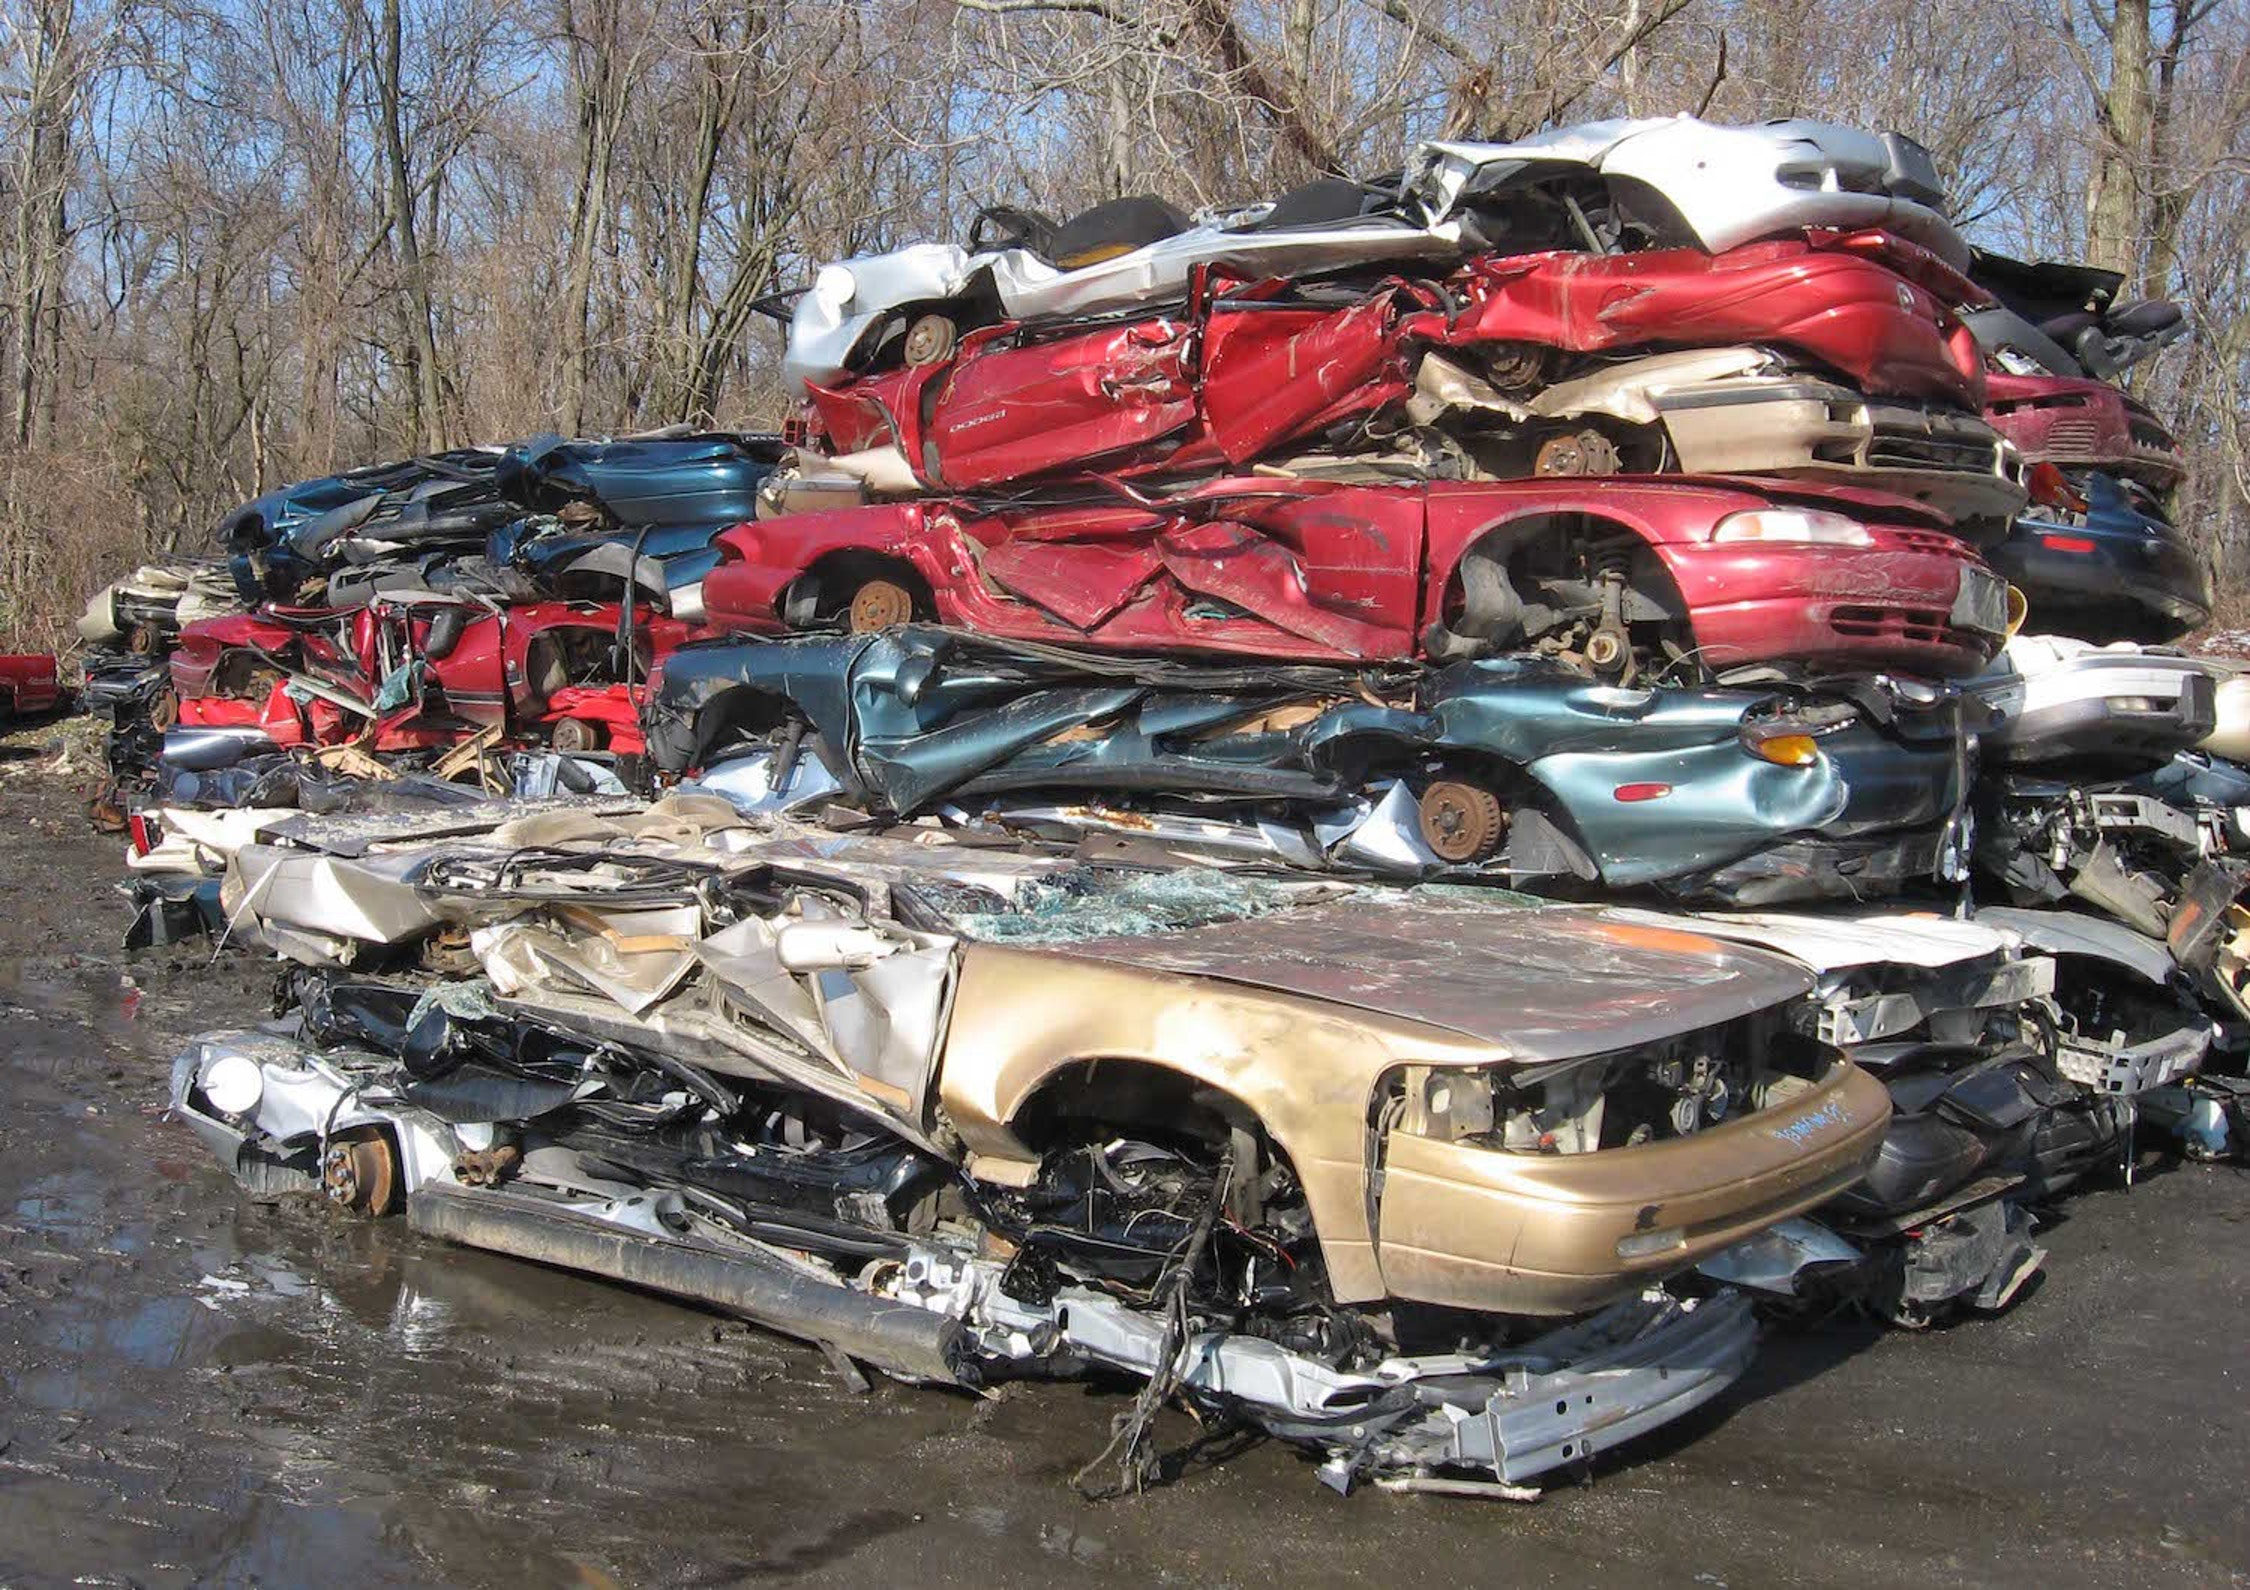 Where gas guzzlers go to die.